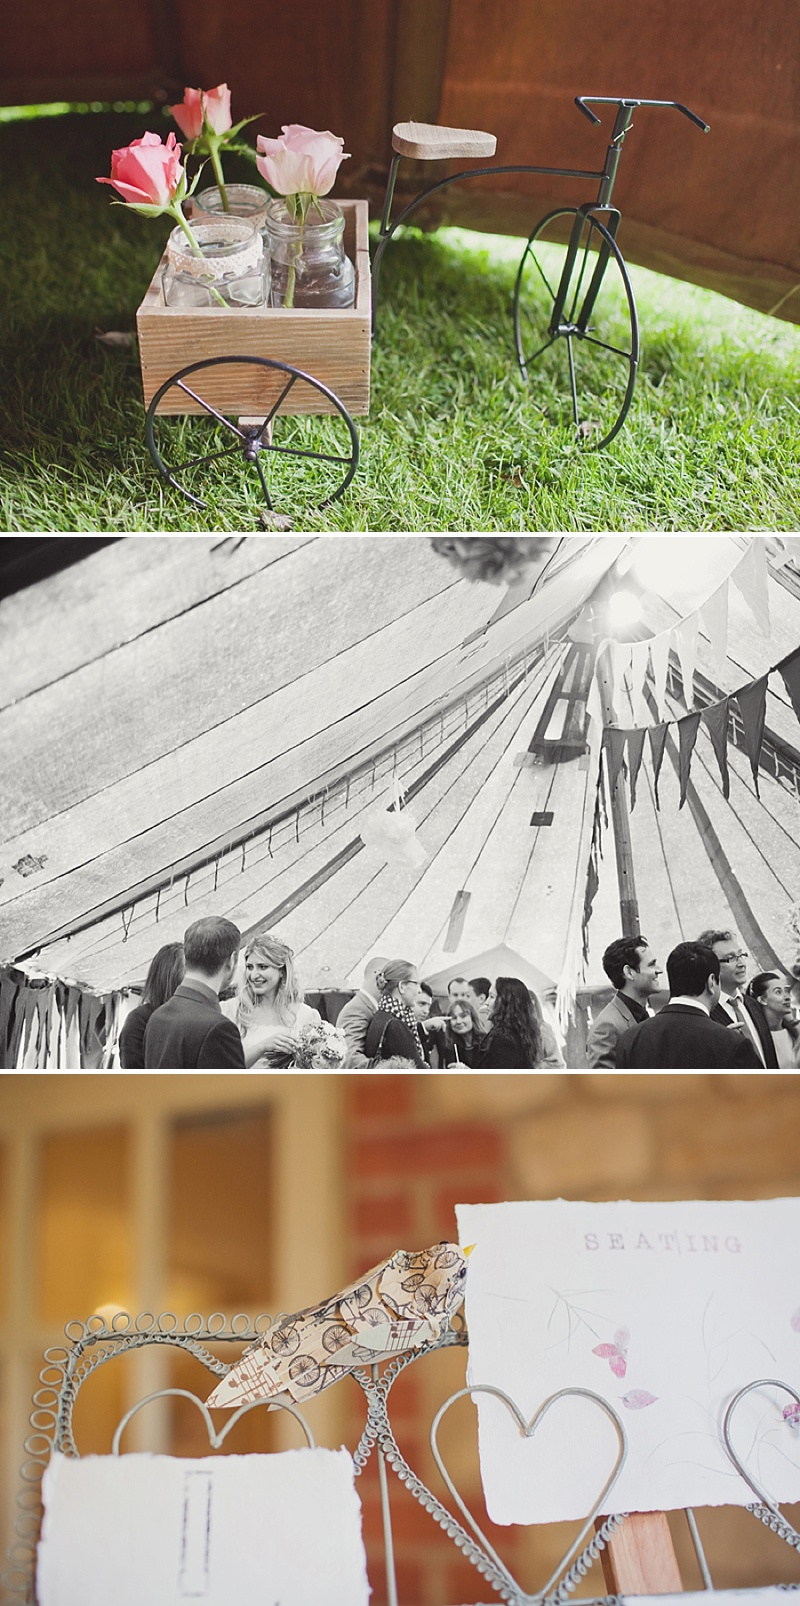 A Countryside Fair Themed Wedding at The Trout Inn Oxfordshire, Images by Cotton Candy Photography. Bride in Vintage Gown from Charlie Brear, Groom In Tweed suit and flat cap_0012